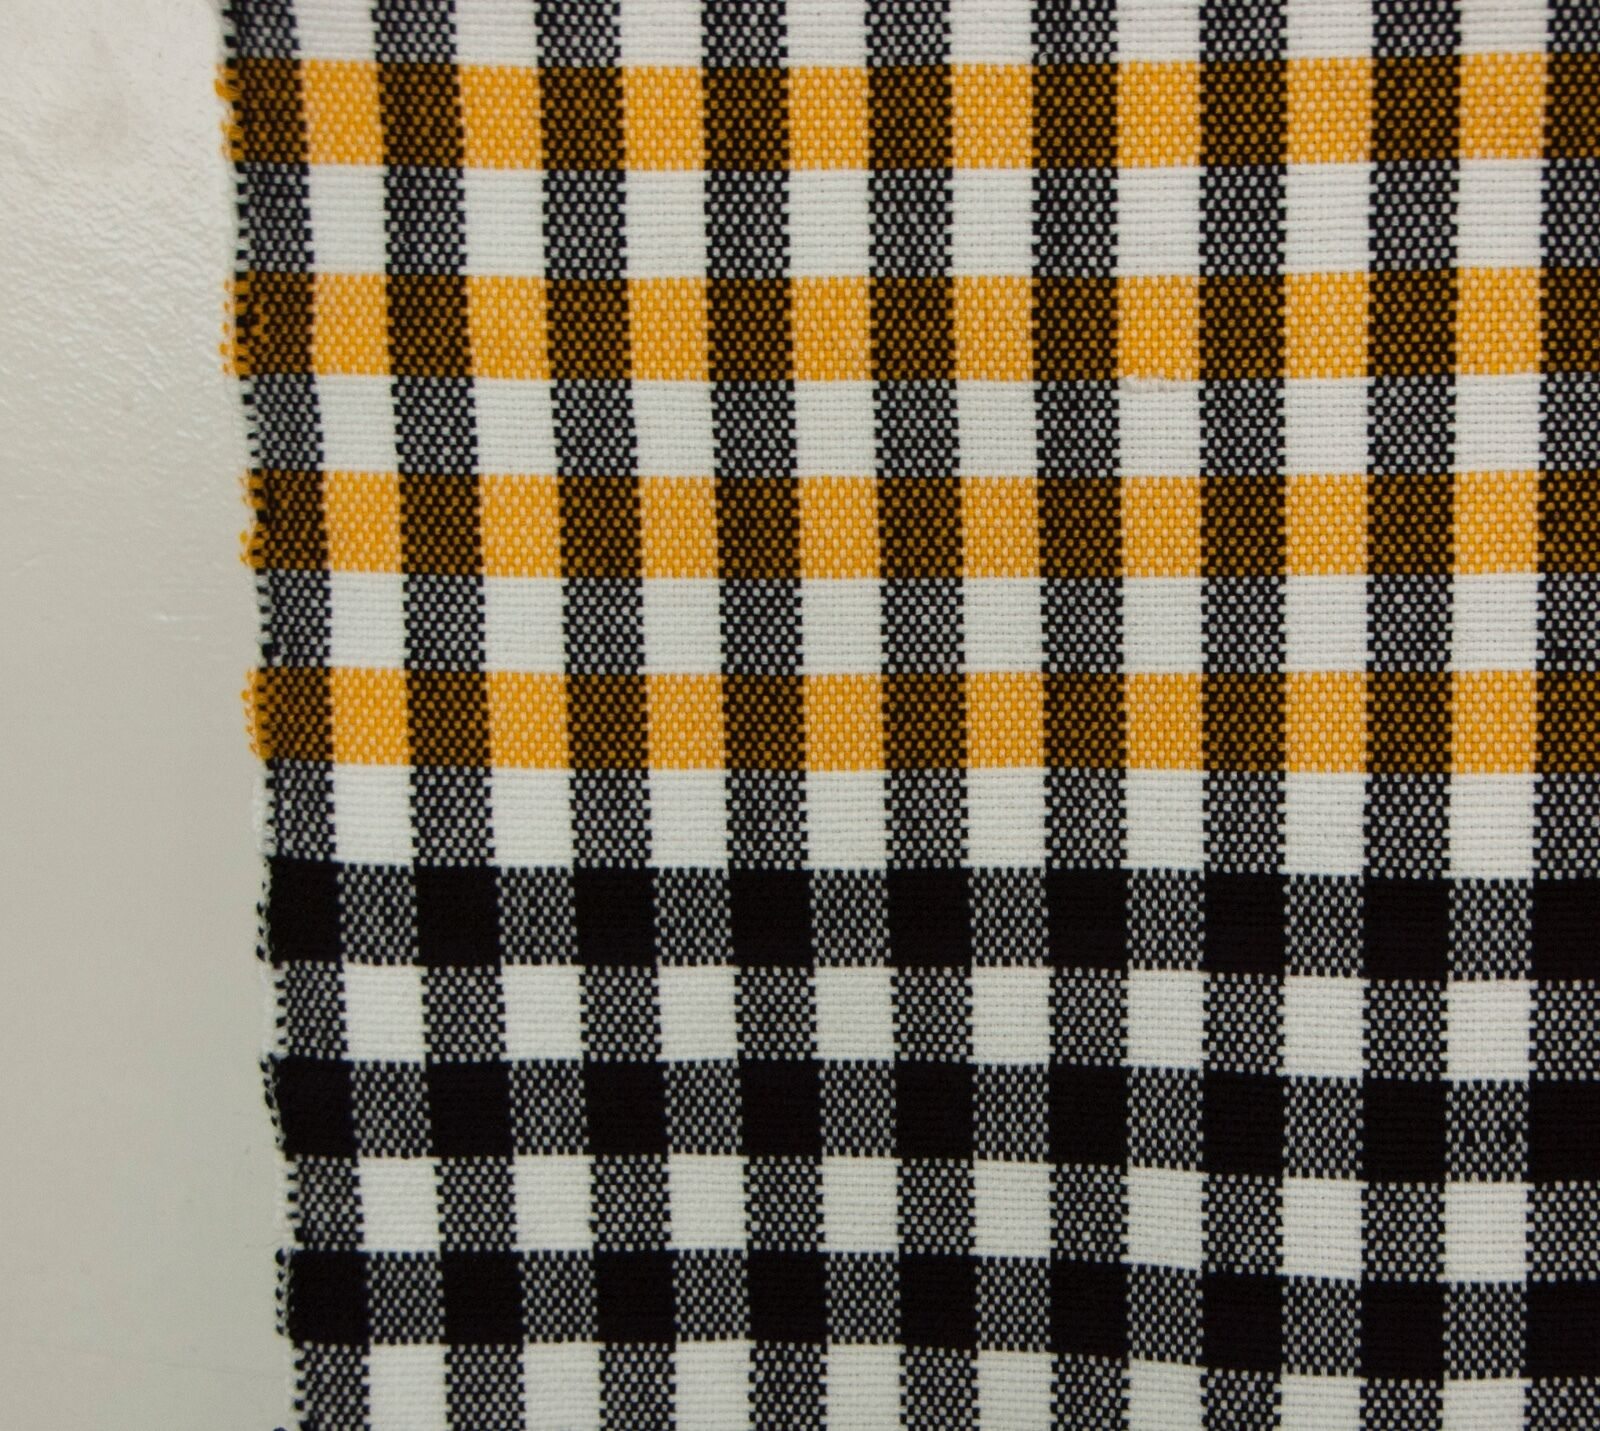 All Merino Wool Knotted Fringe Moroccan Hand Made Blanket Throw 7/' x 6/' Checkerboard Pattern Mustard Yellow and Black